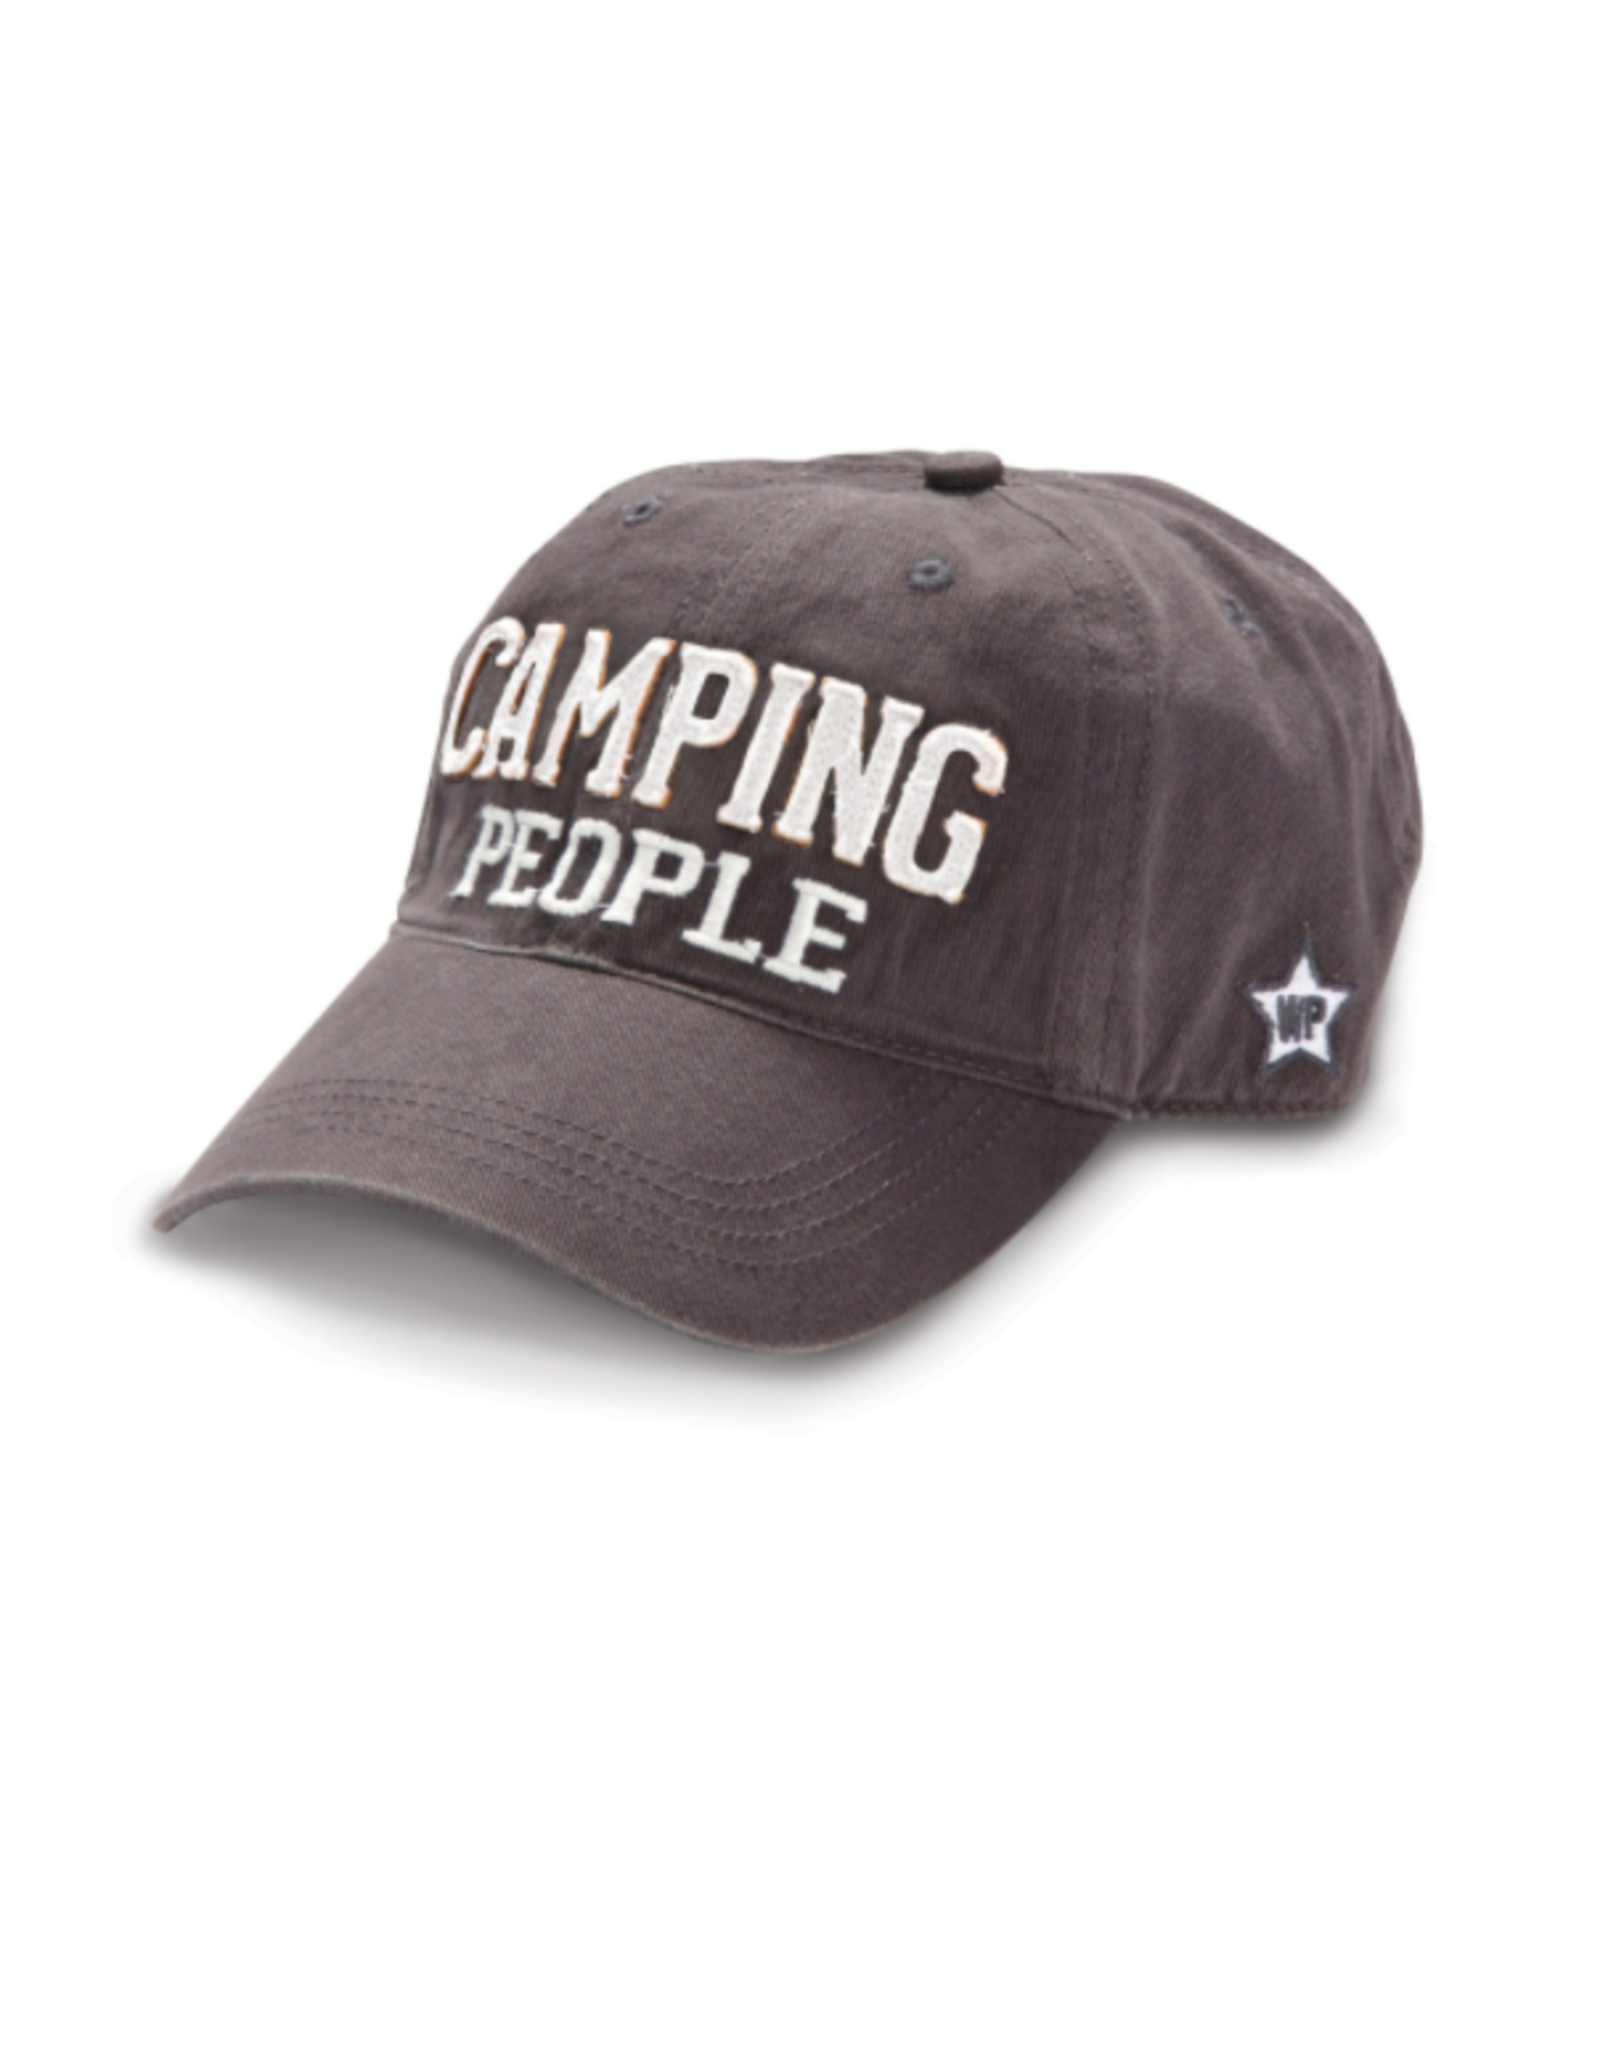 Camping People Ball Hat, grey